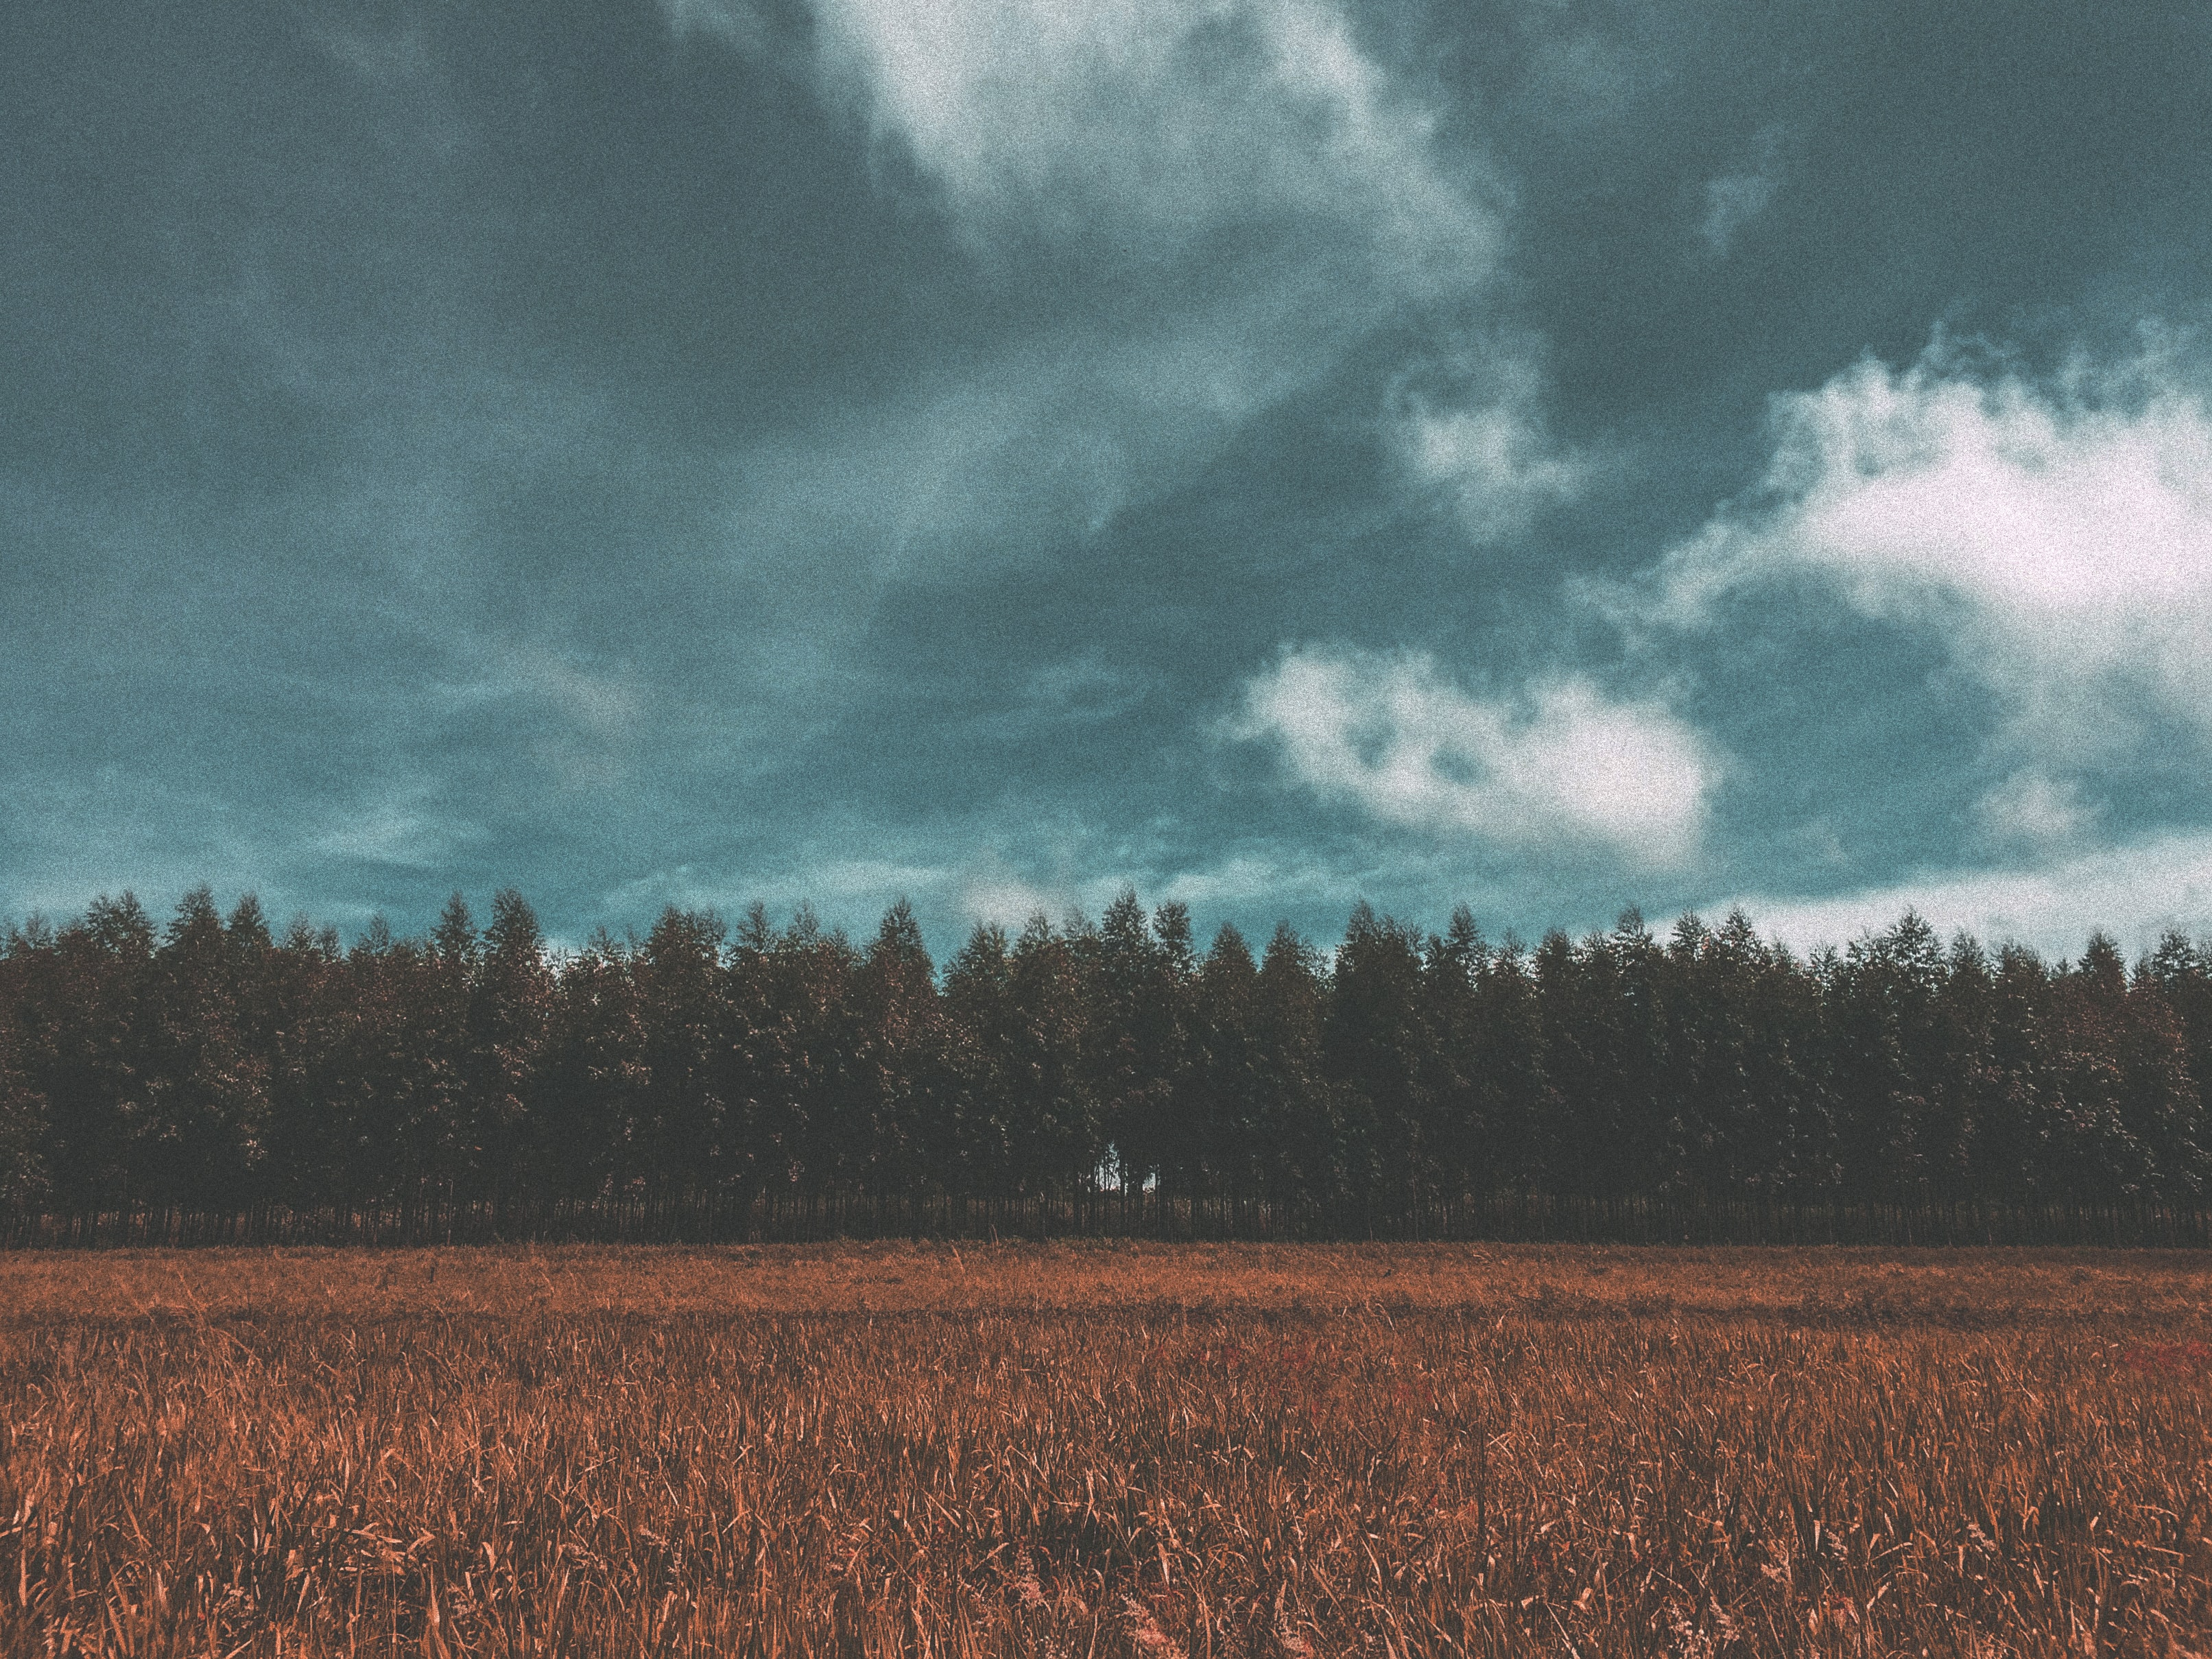 field with trees under cloudy sky